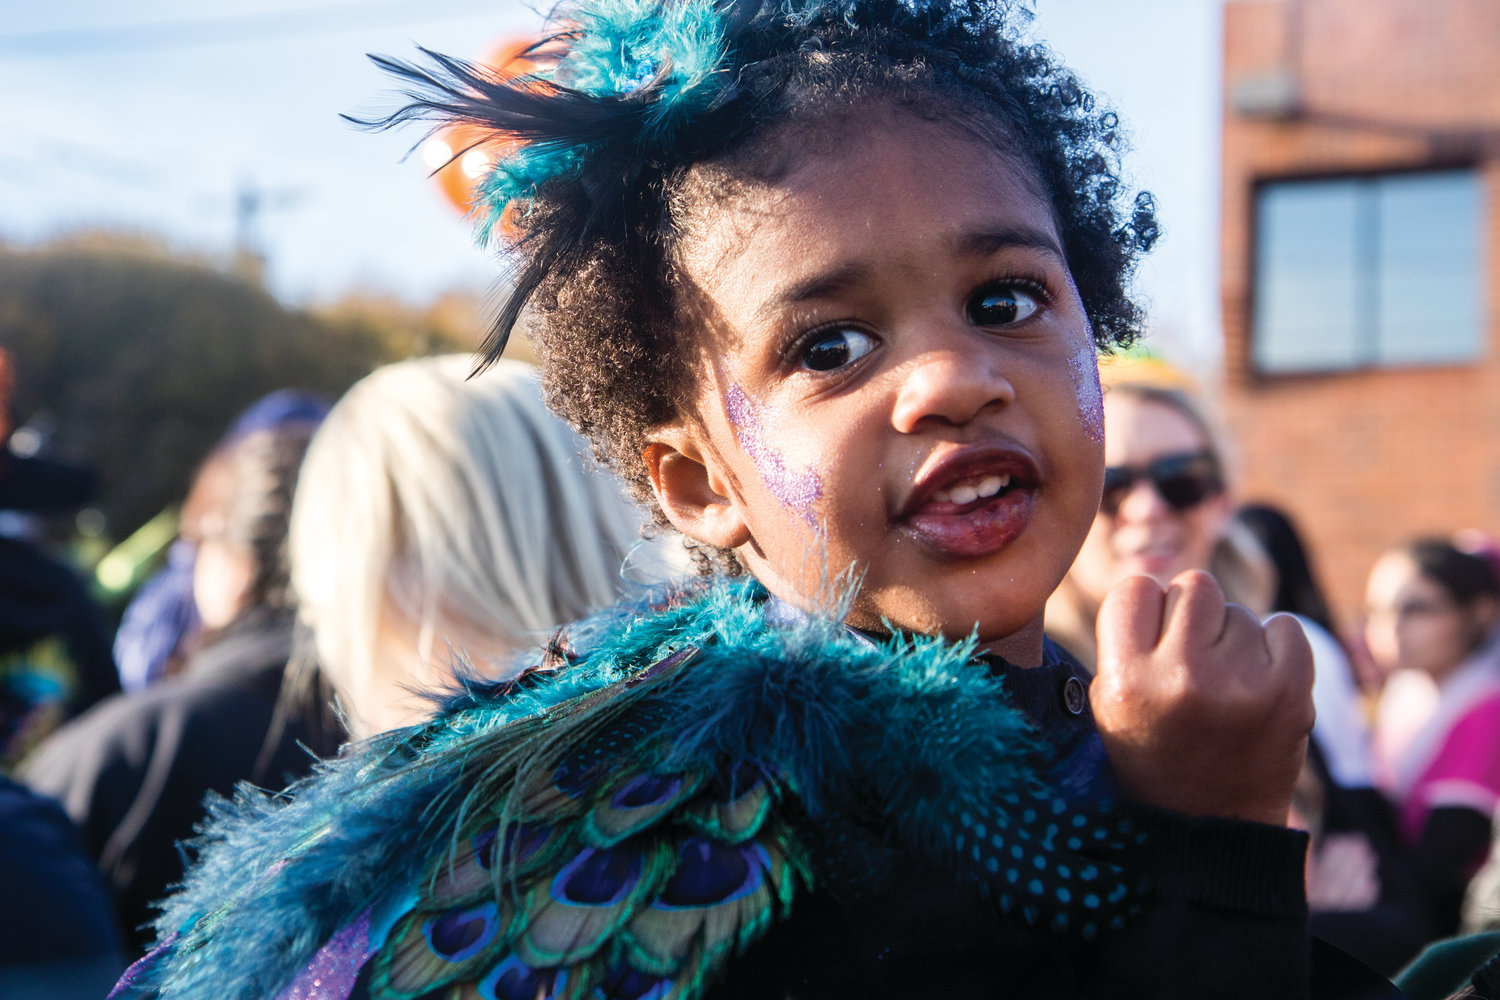 Zuri Bohannon shows off her glittering peacock feathers as she awaits Port Townsend's Halloween community photo and parade. In the arms of Kymber McLay, she is ready to visit Water Street's storefronts for some trick-or-treating.